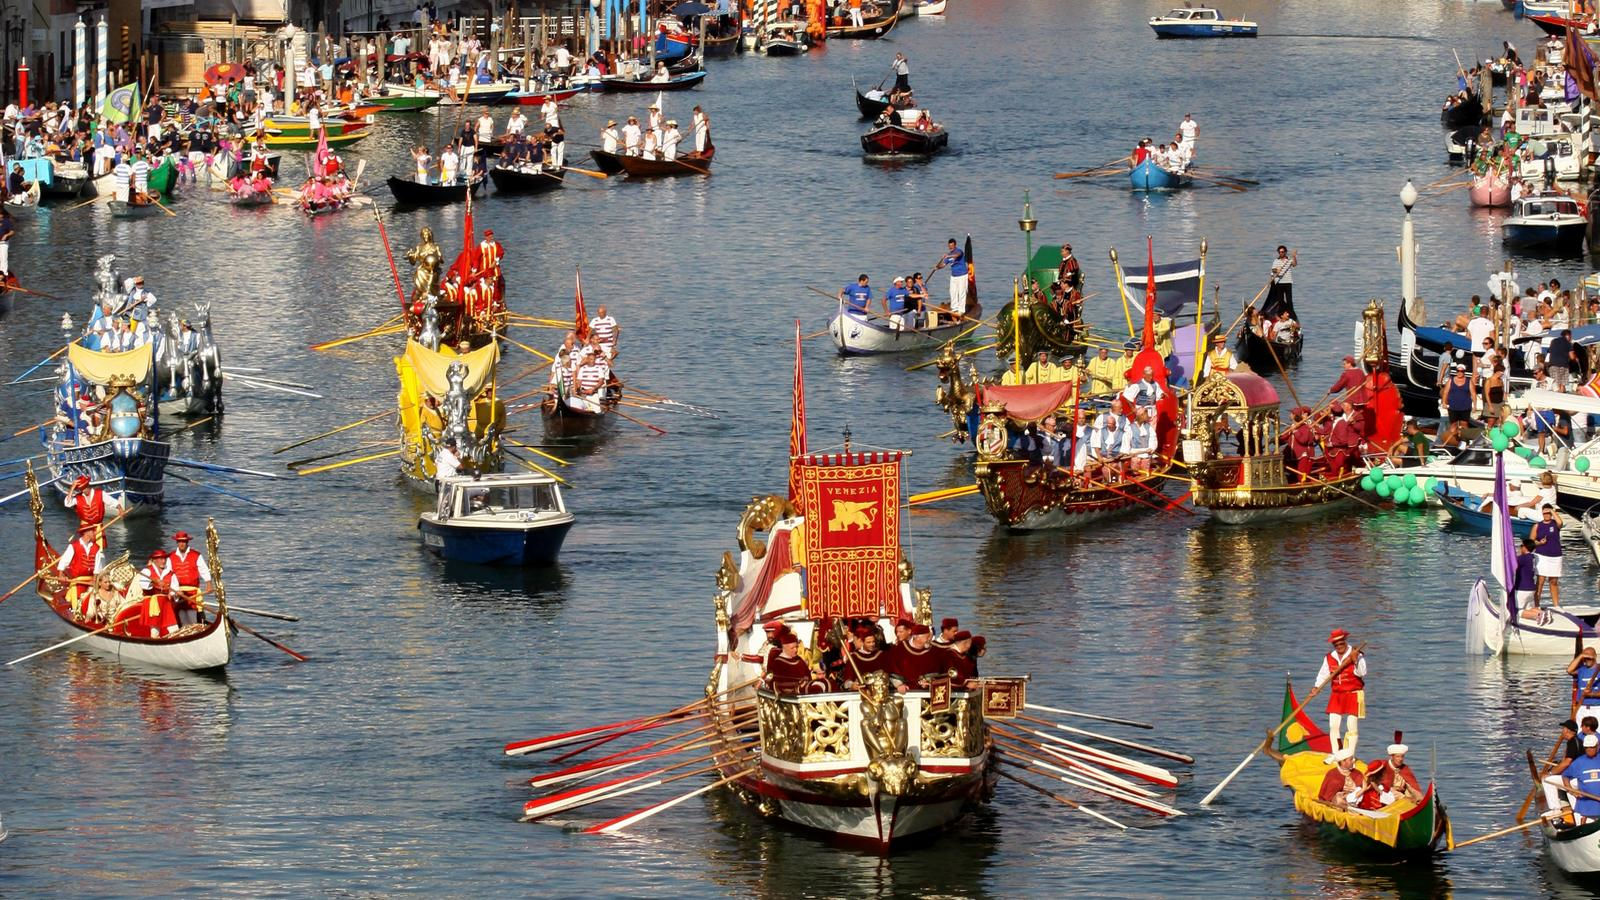 Regata Storica on the Grand Canal